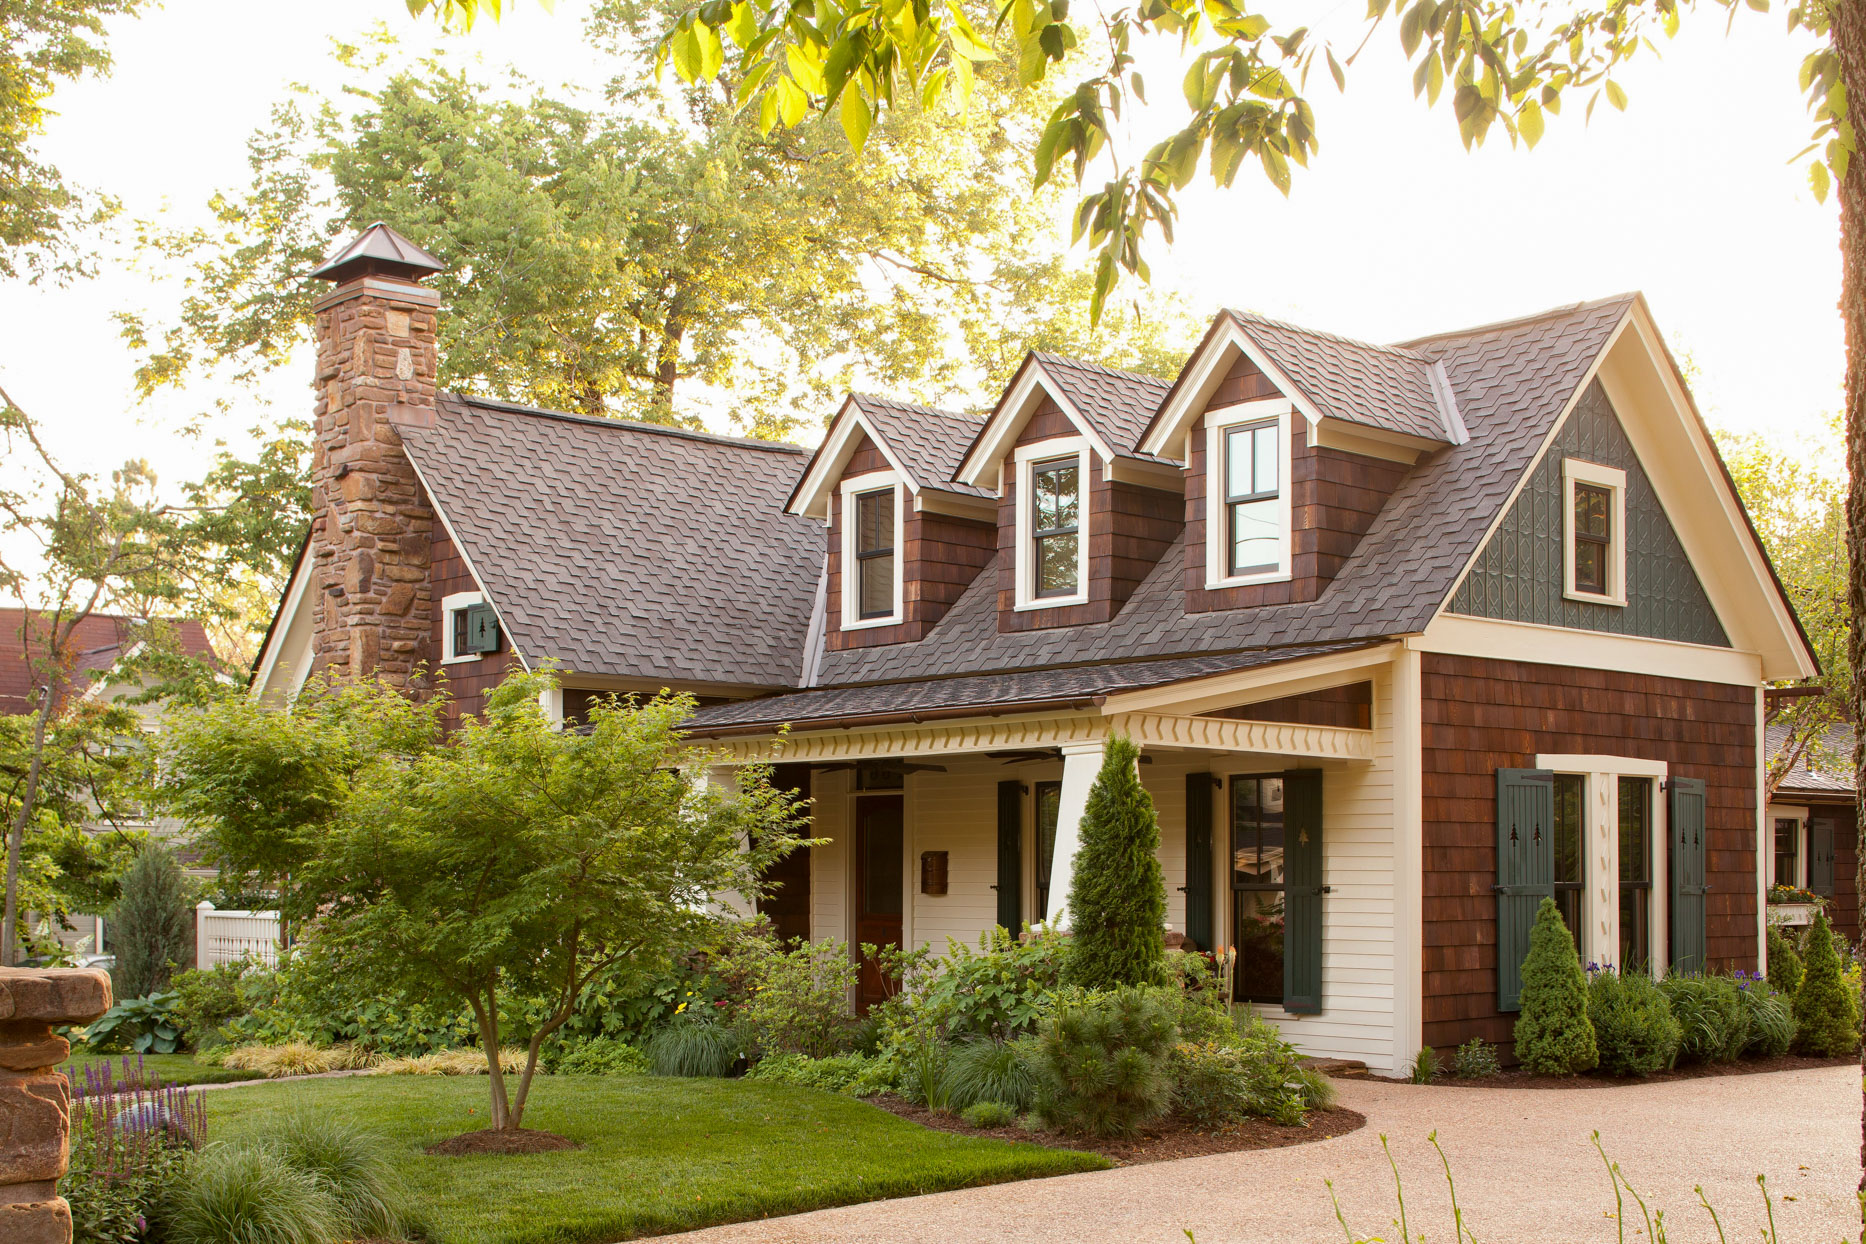 home exterior with gables